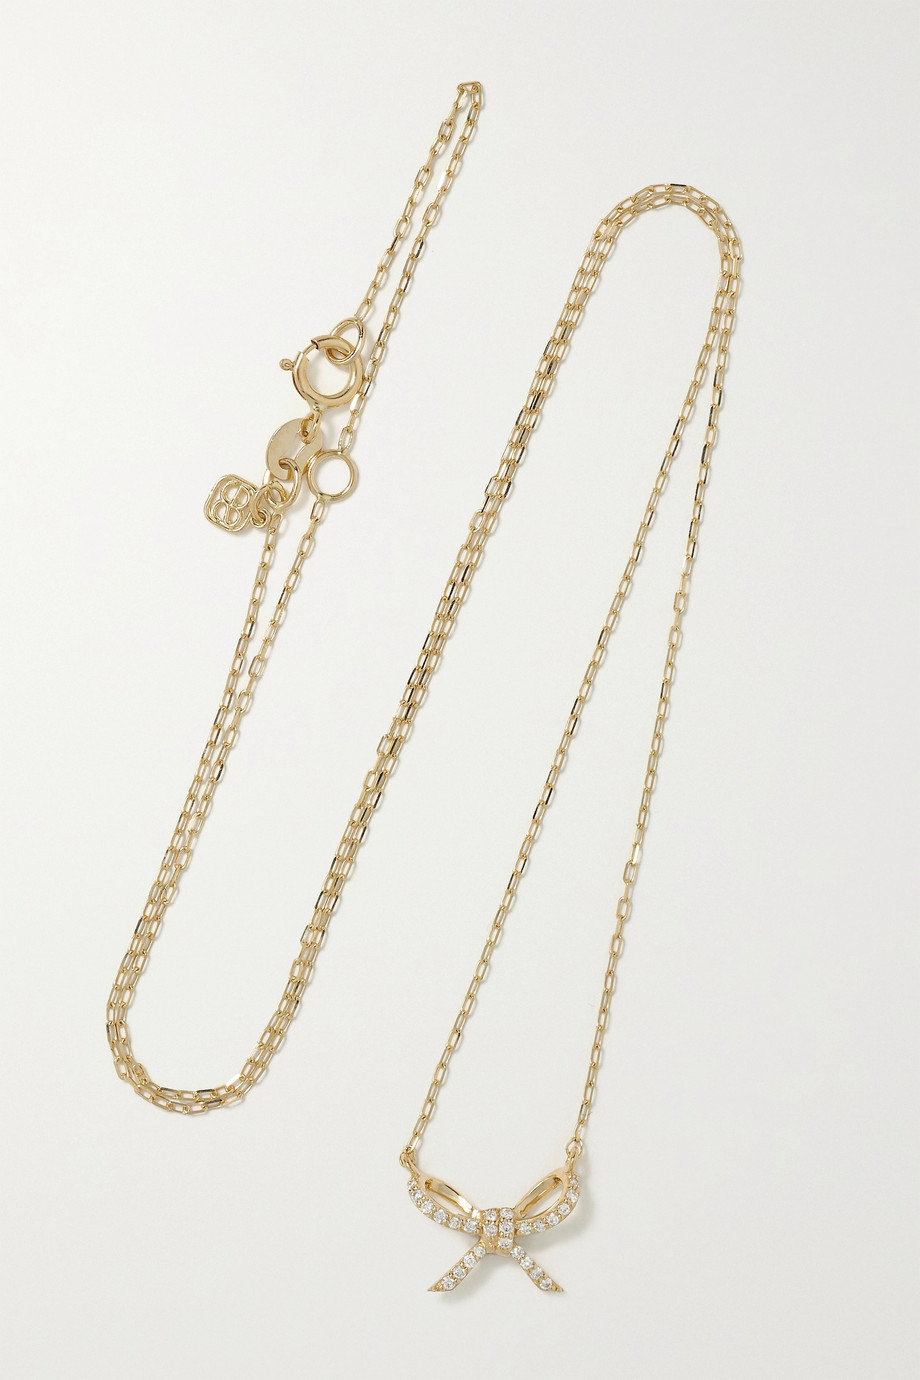 Sydney Evan Bow 14-karat gold diamond necklace